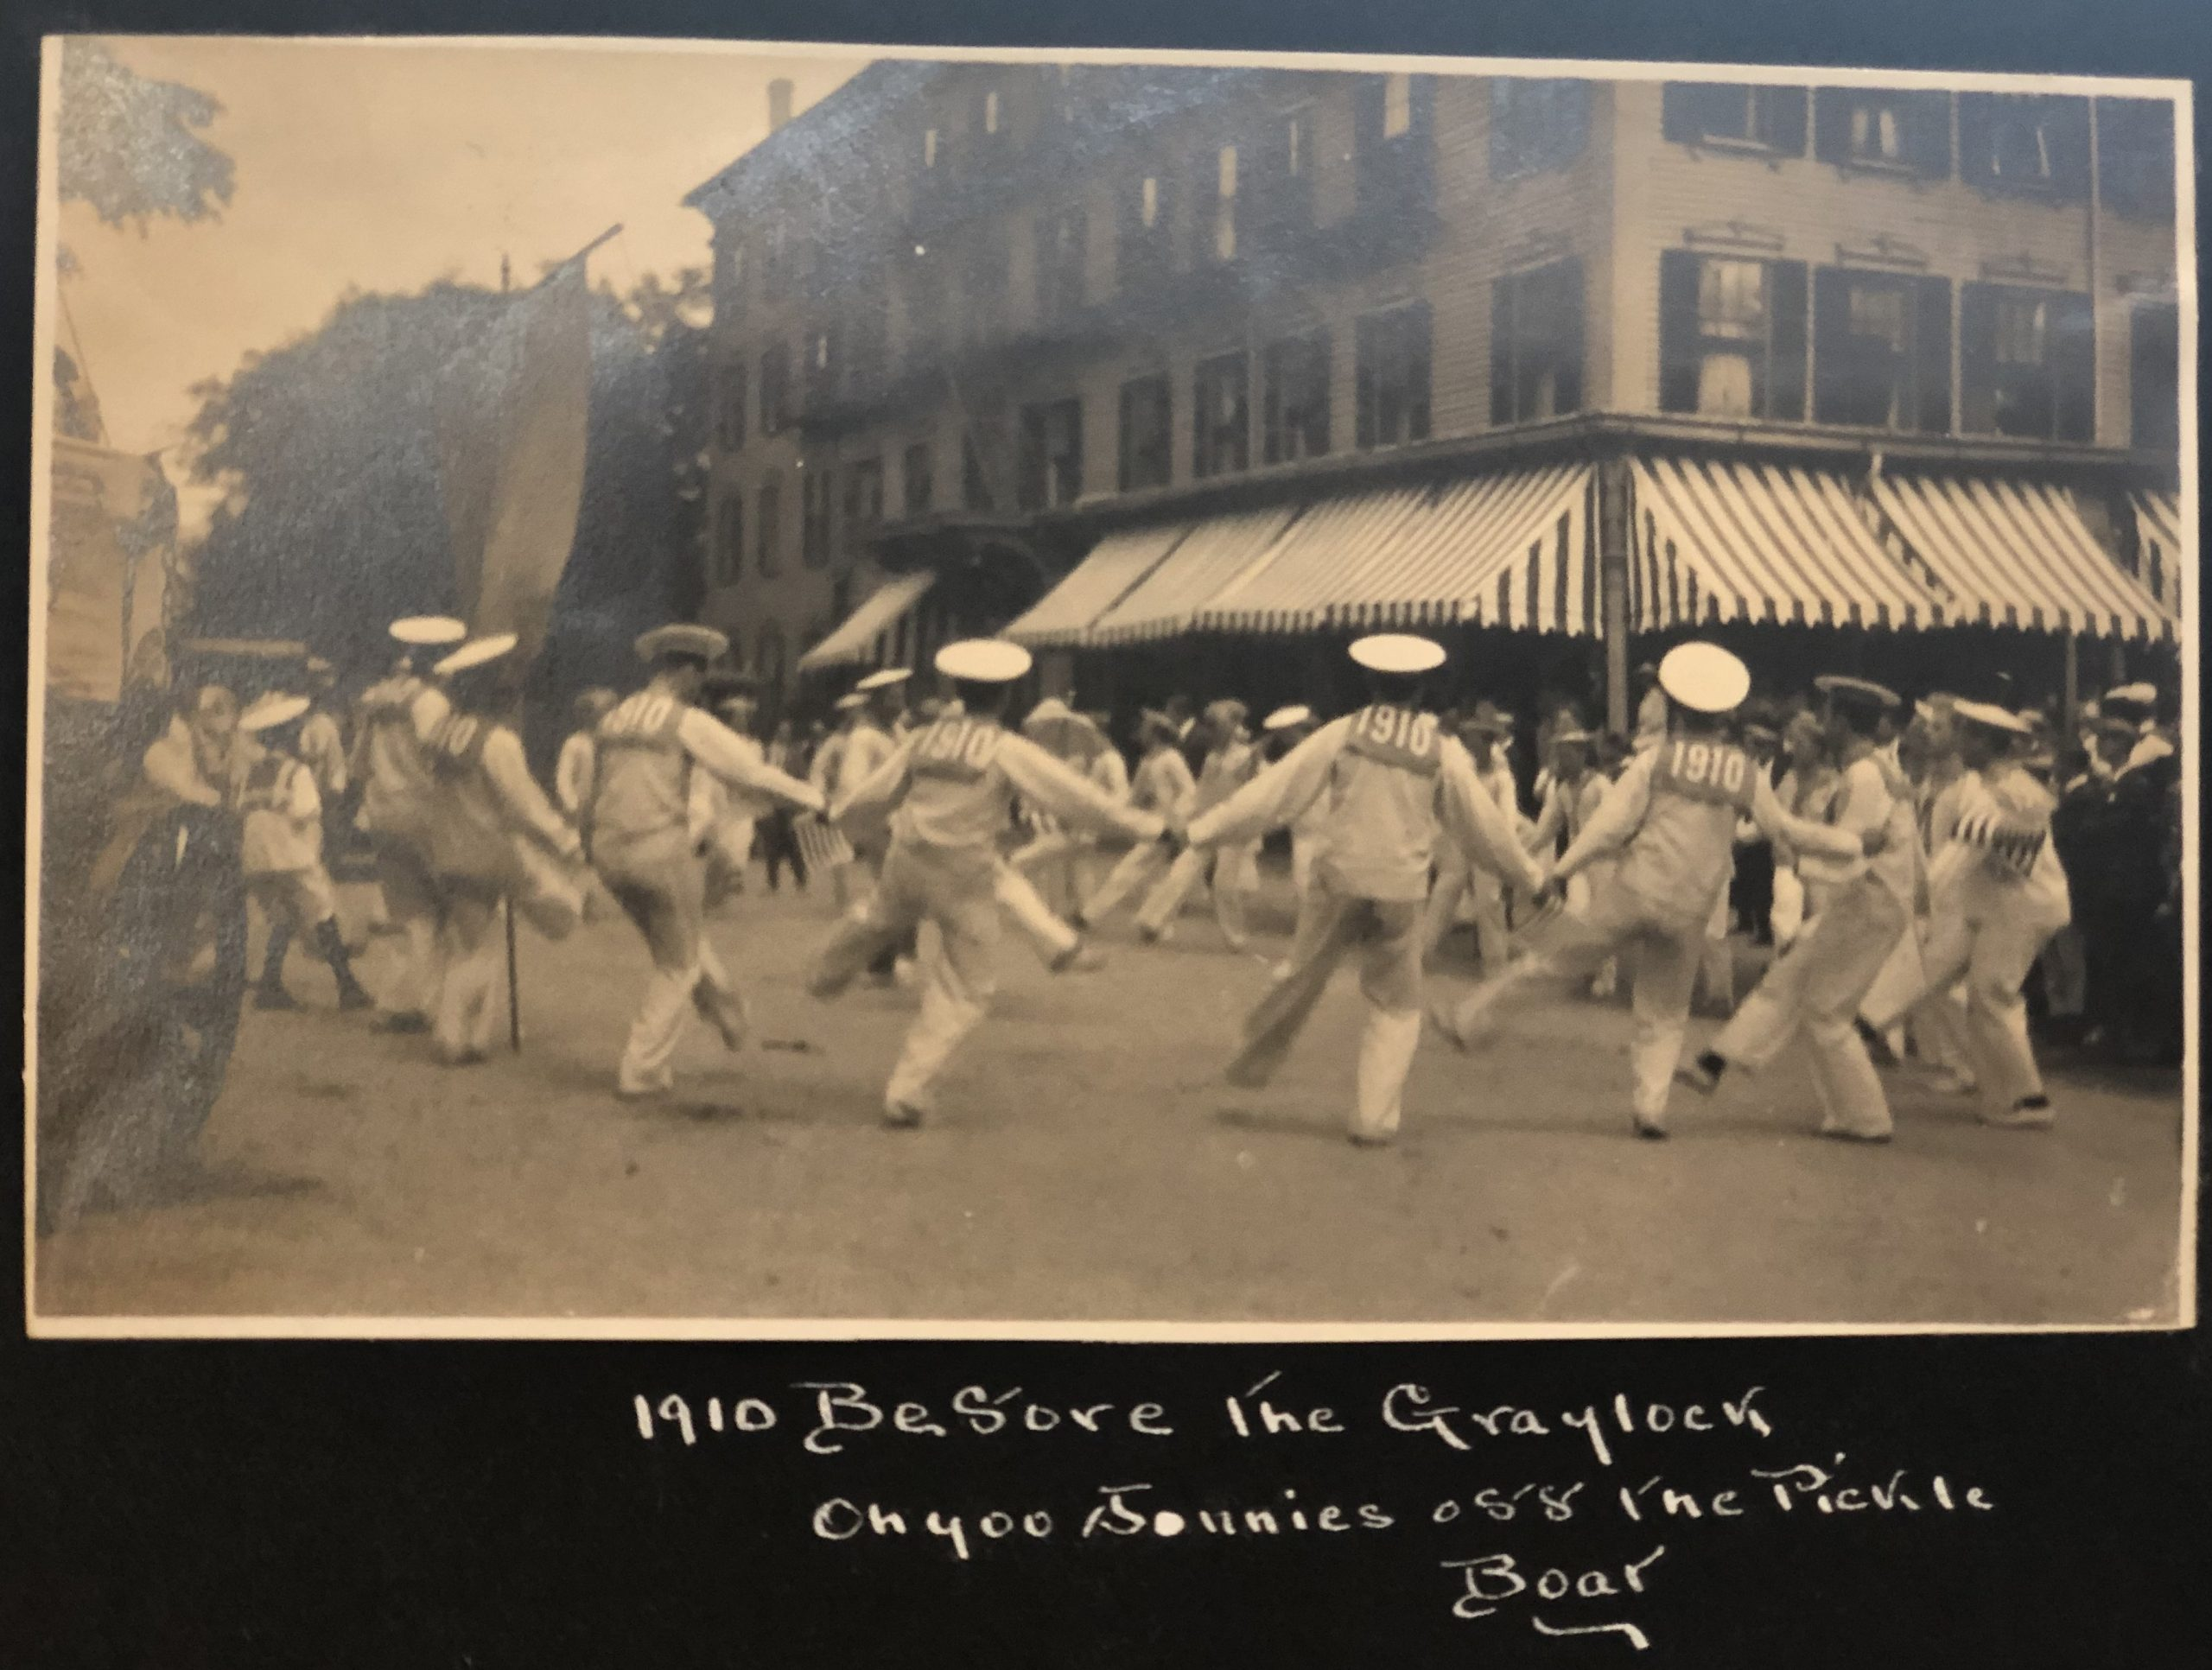 A black and white photograph in an album shows men from the class of 1910 dressed as sailors with dancing in the street at their three-year reunion.